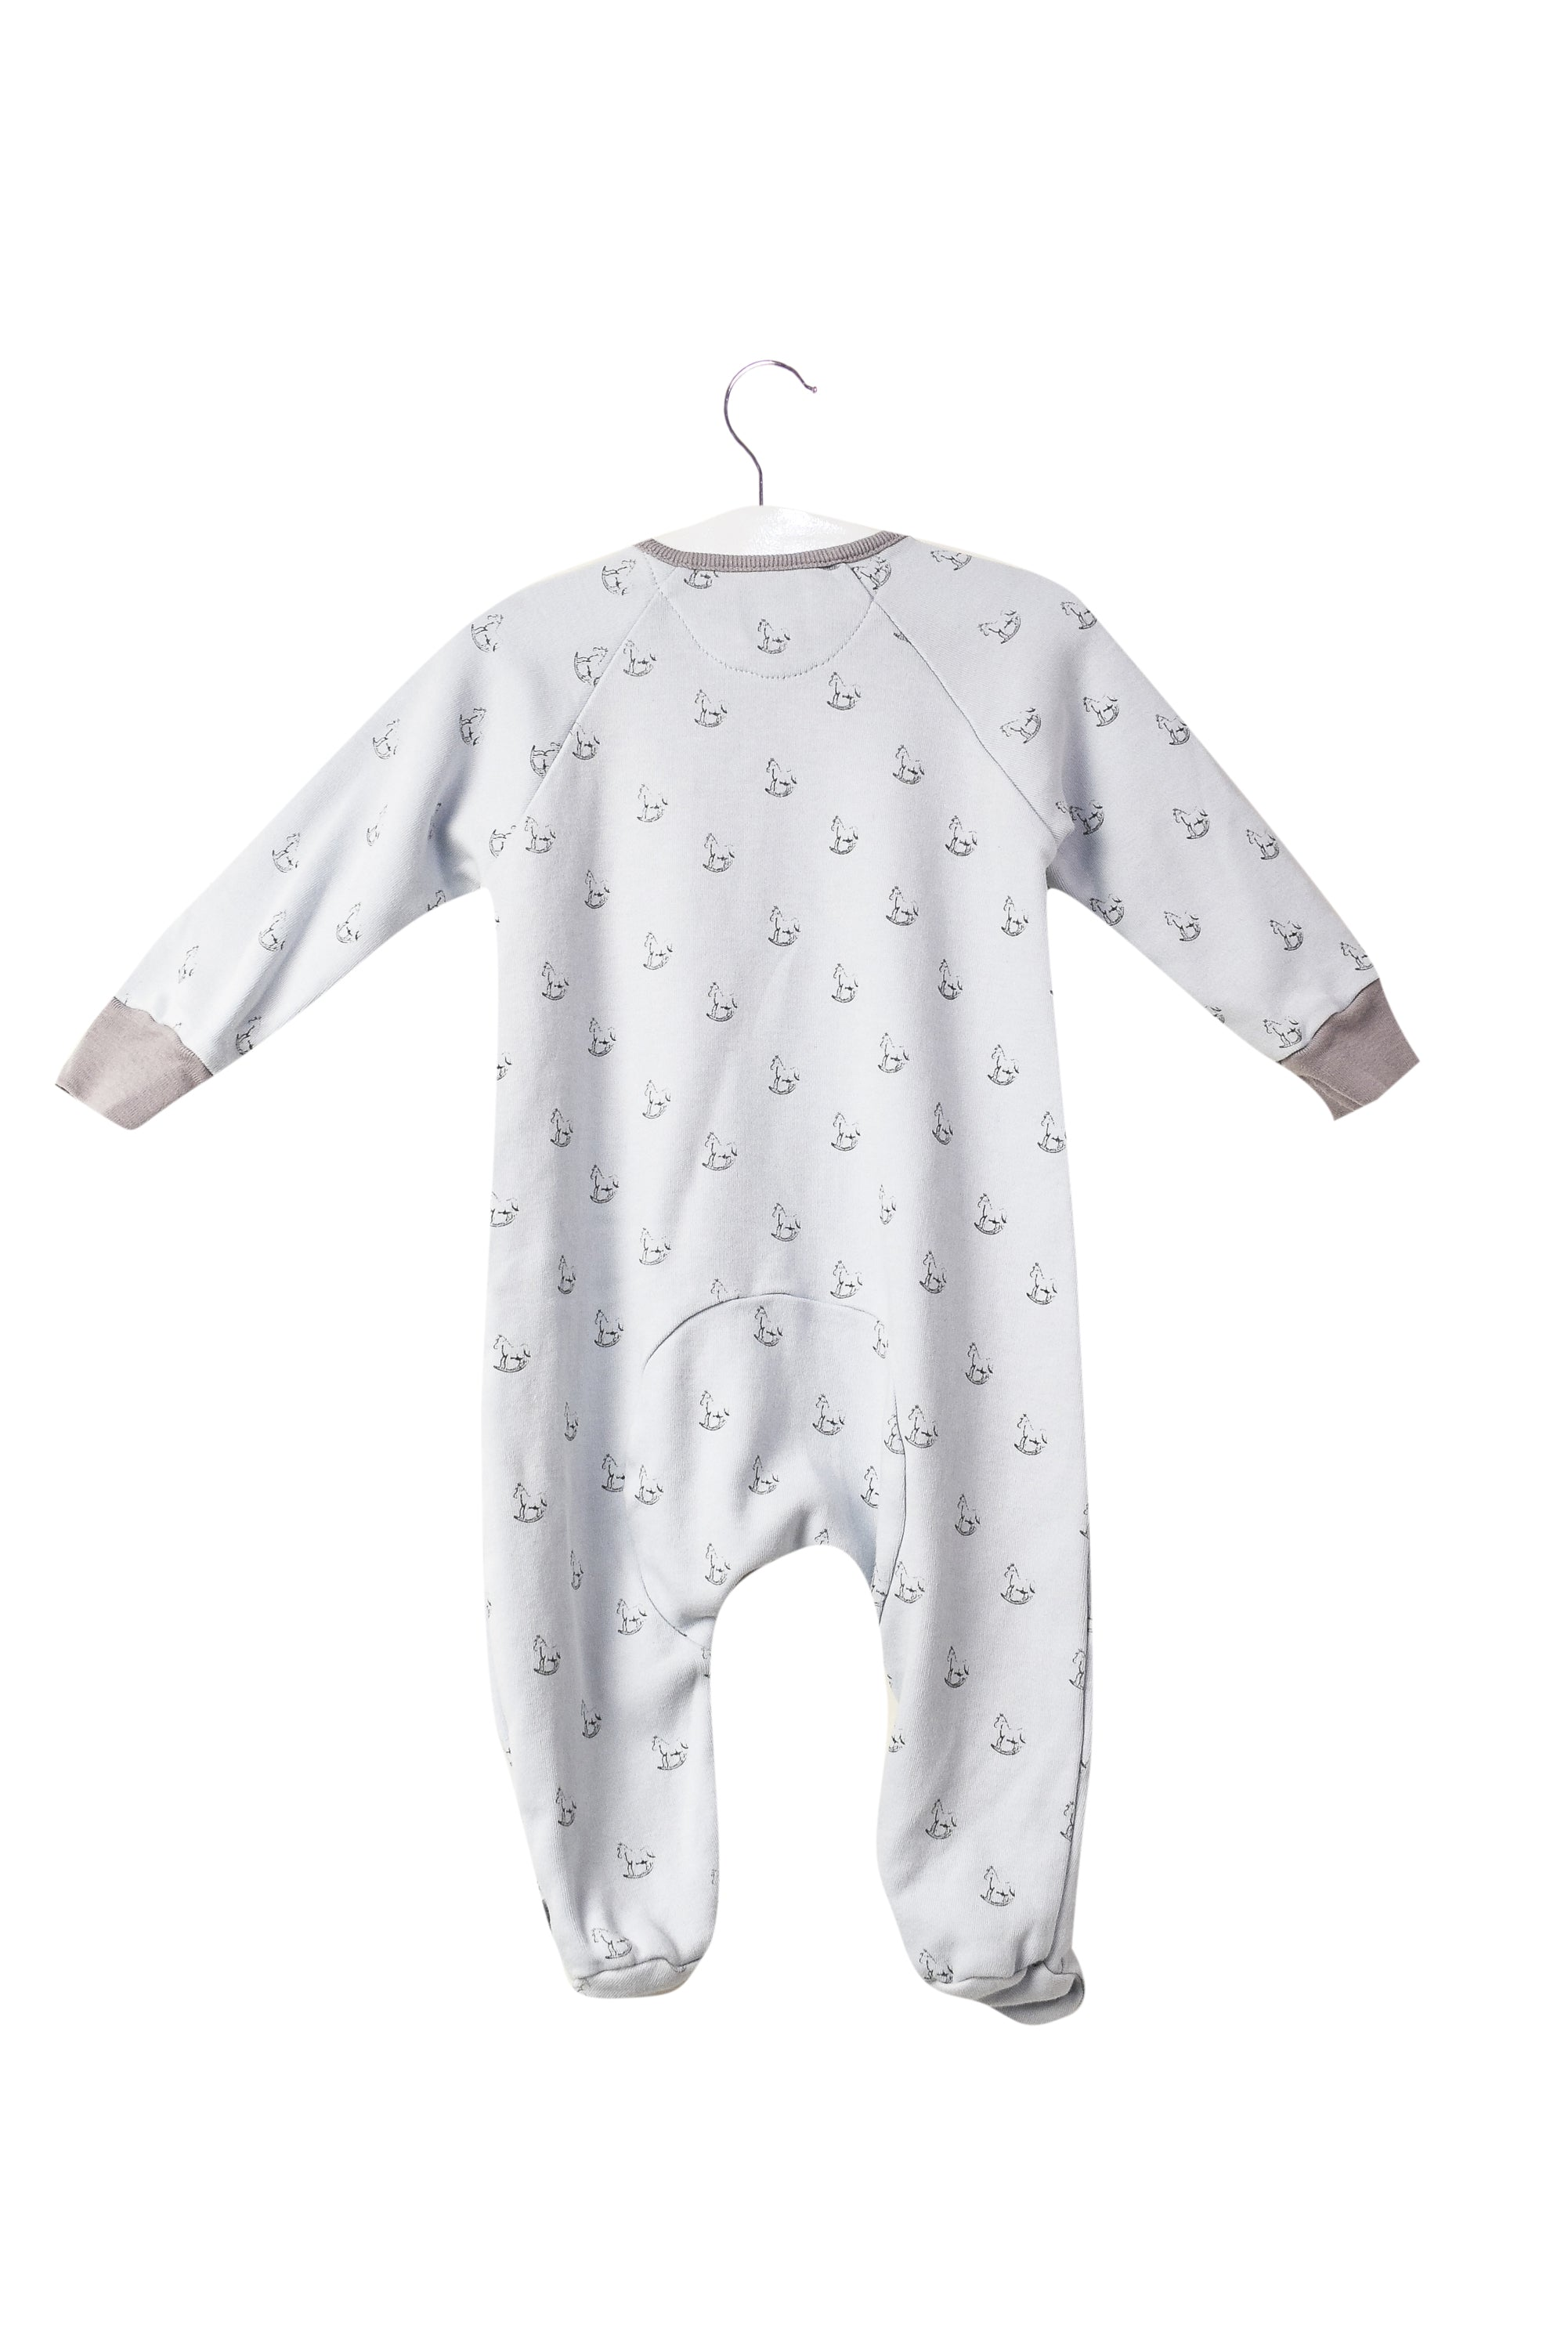 10045684 The Little Tailor Baby~Jumpsuit 3-6M at Retykle